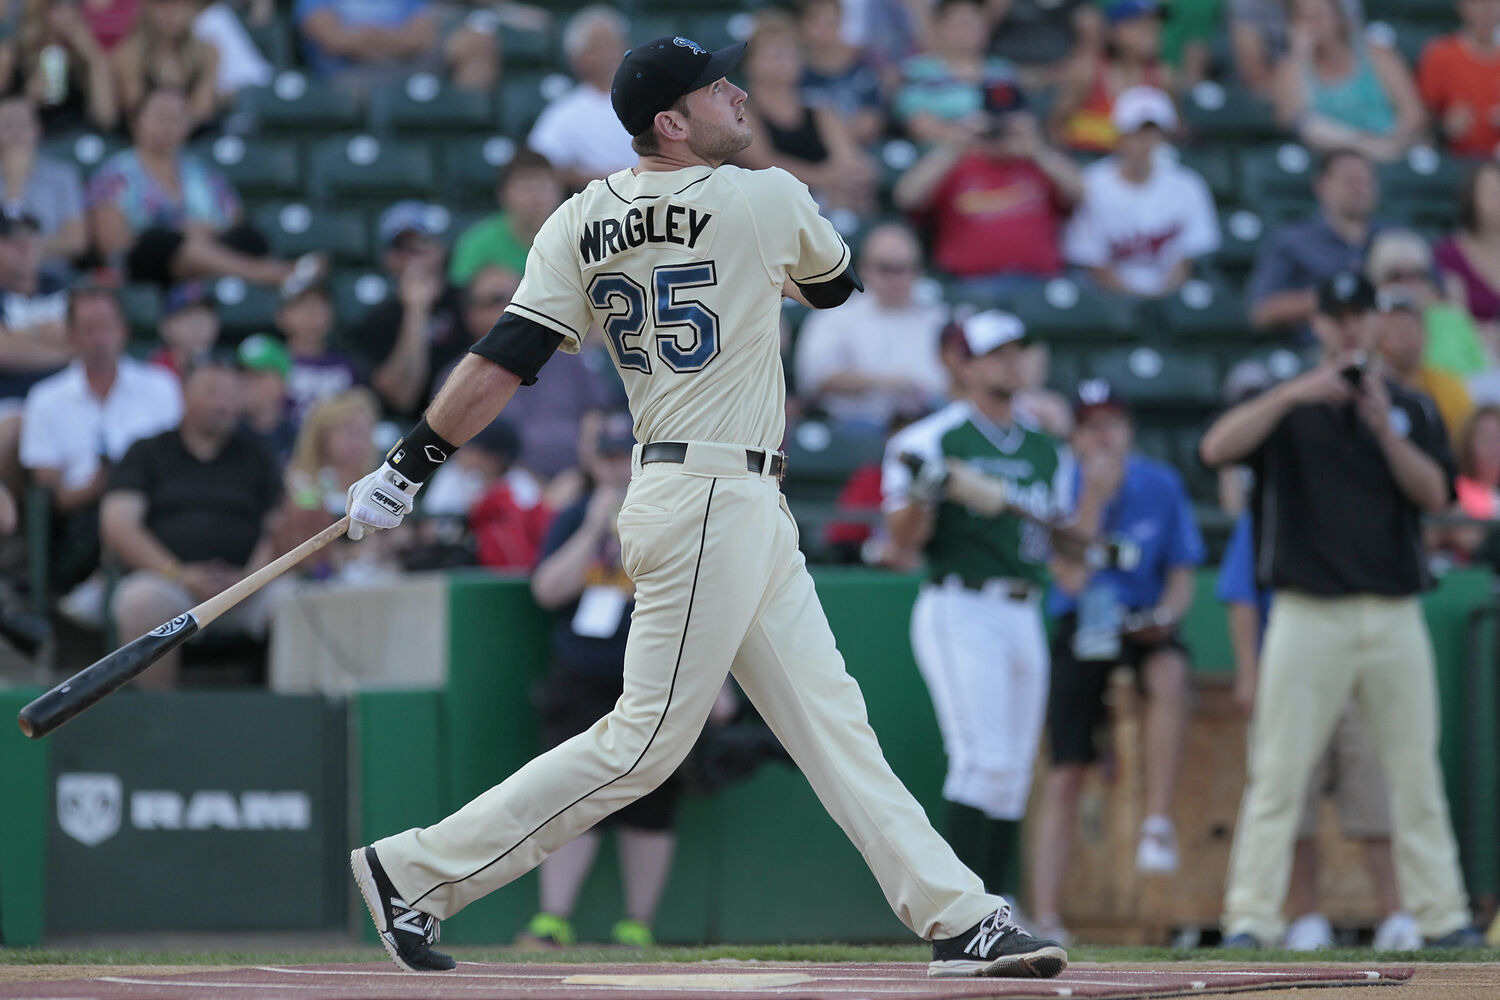 Henry Wrigley of the St. Paul Saints bats during the All-Stars Skills Competition. (John Woods / Winnipeg Free Press)